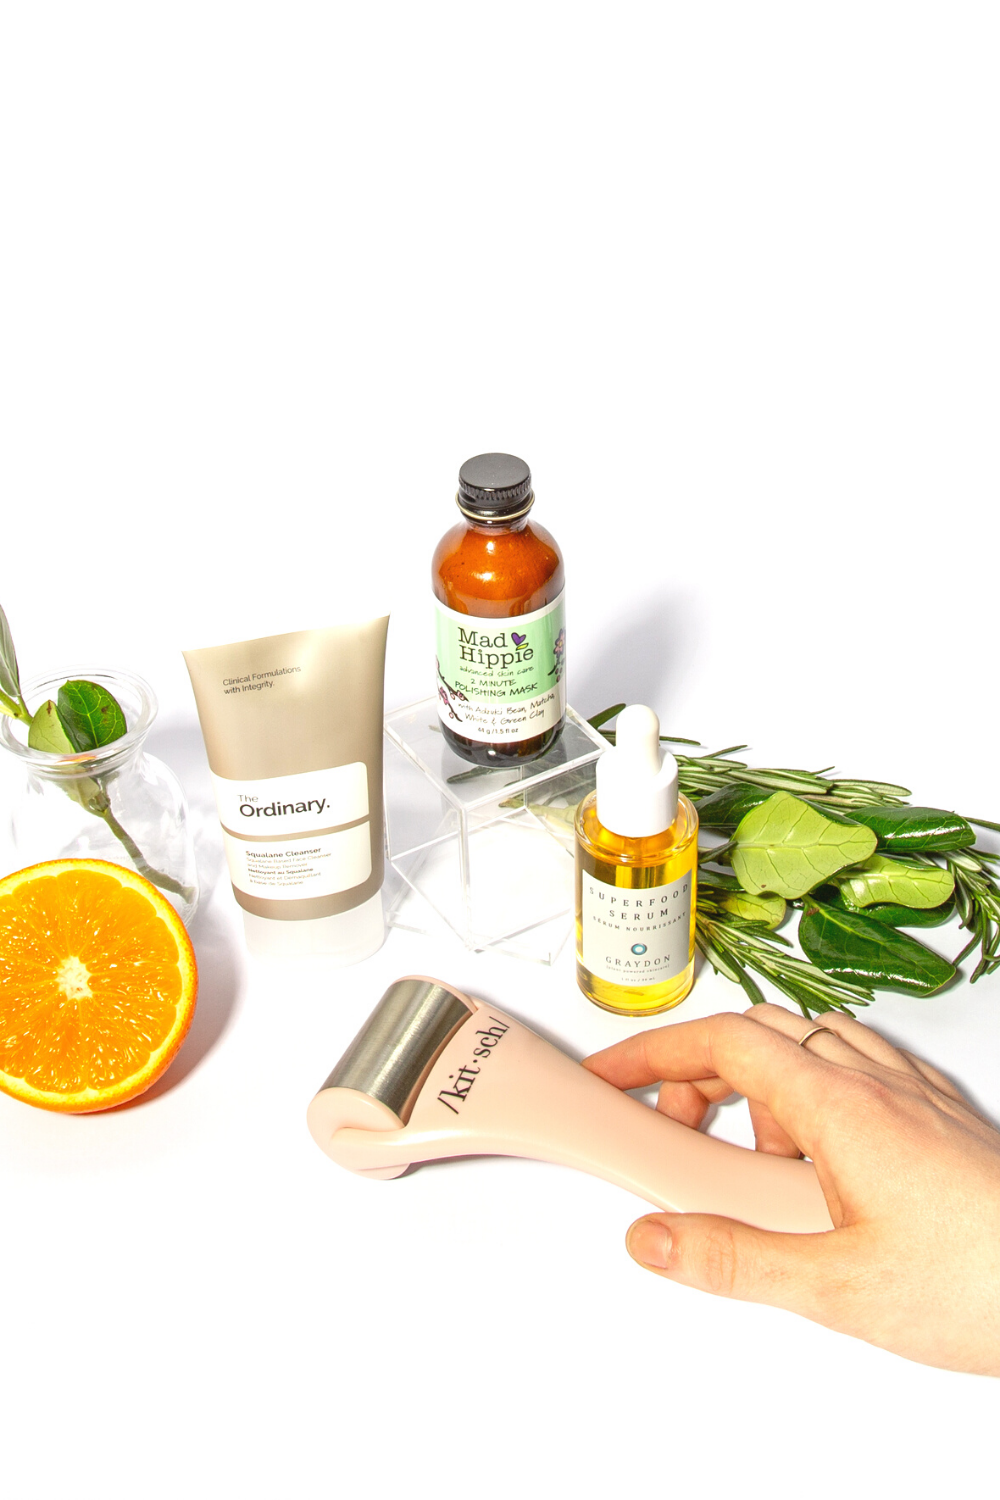 Our beauty favourites The Ordinary, Mad Hippie, Graydon